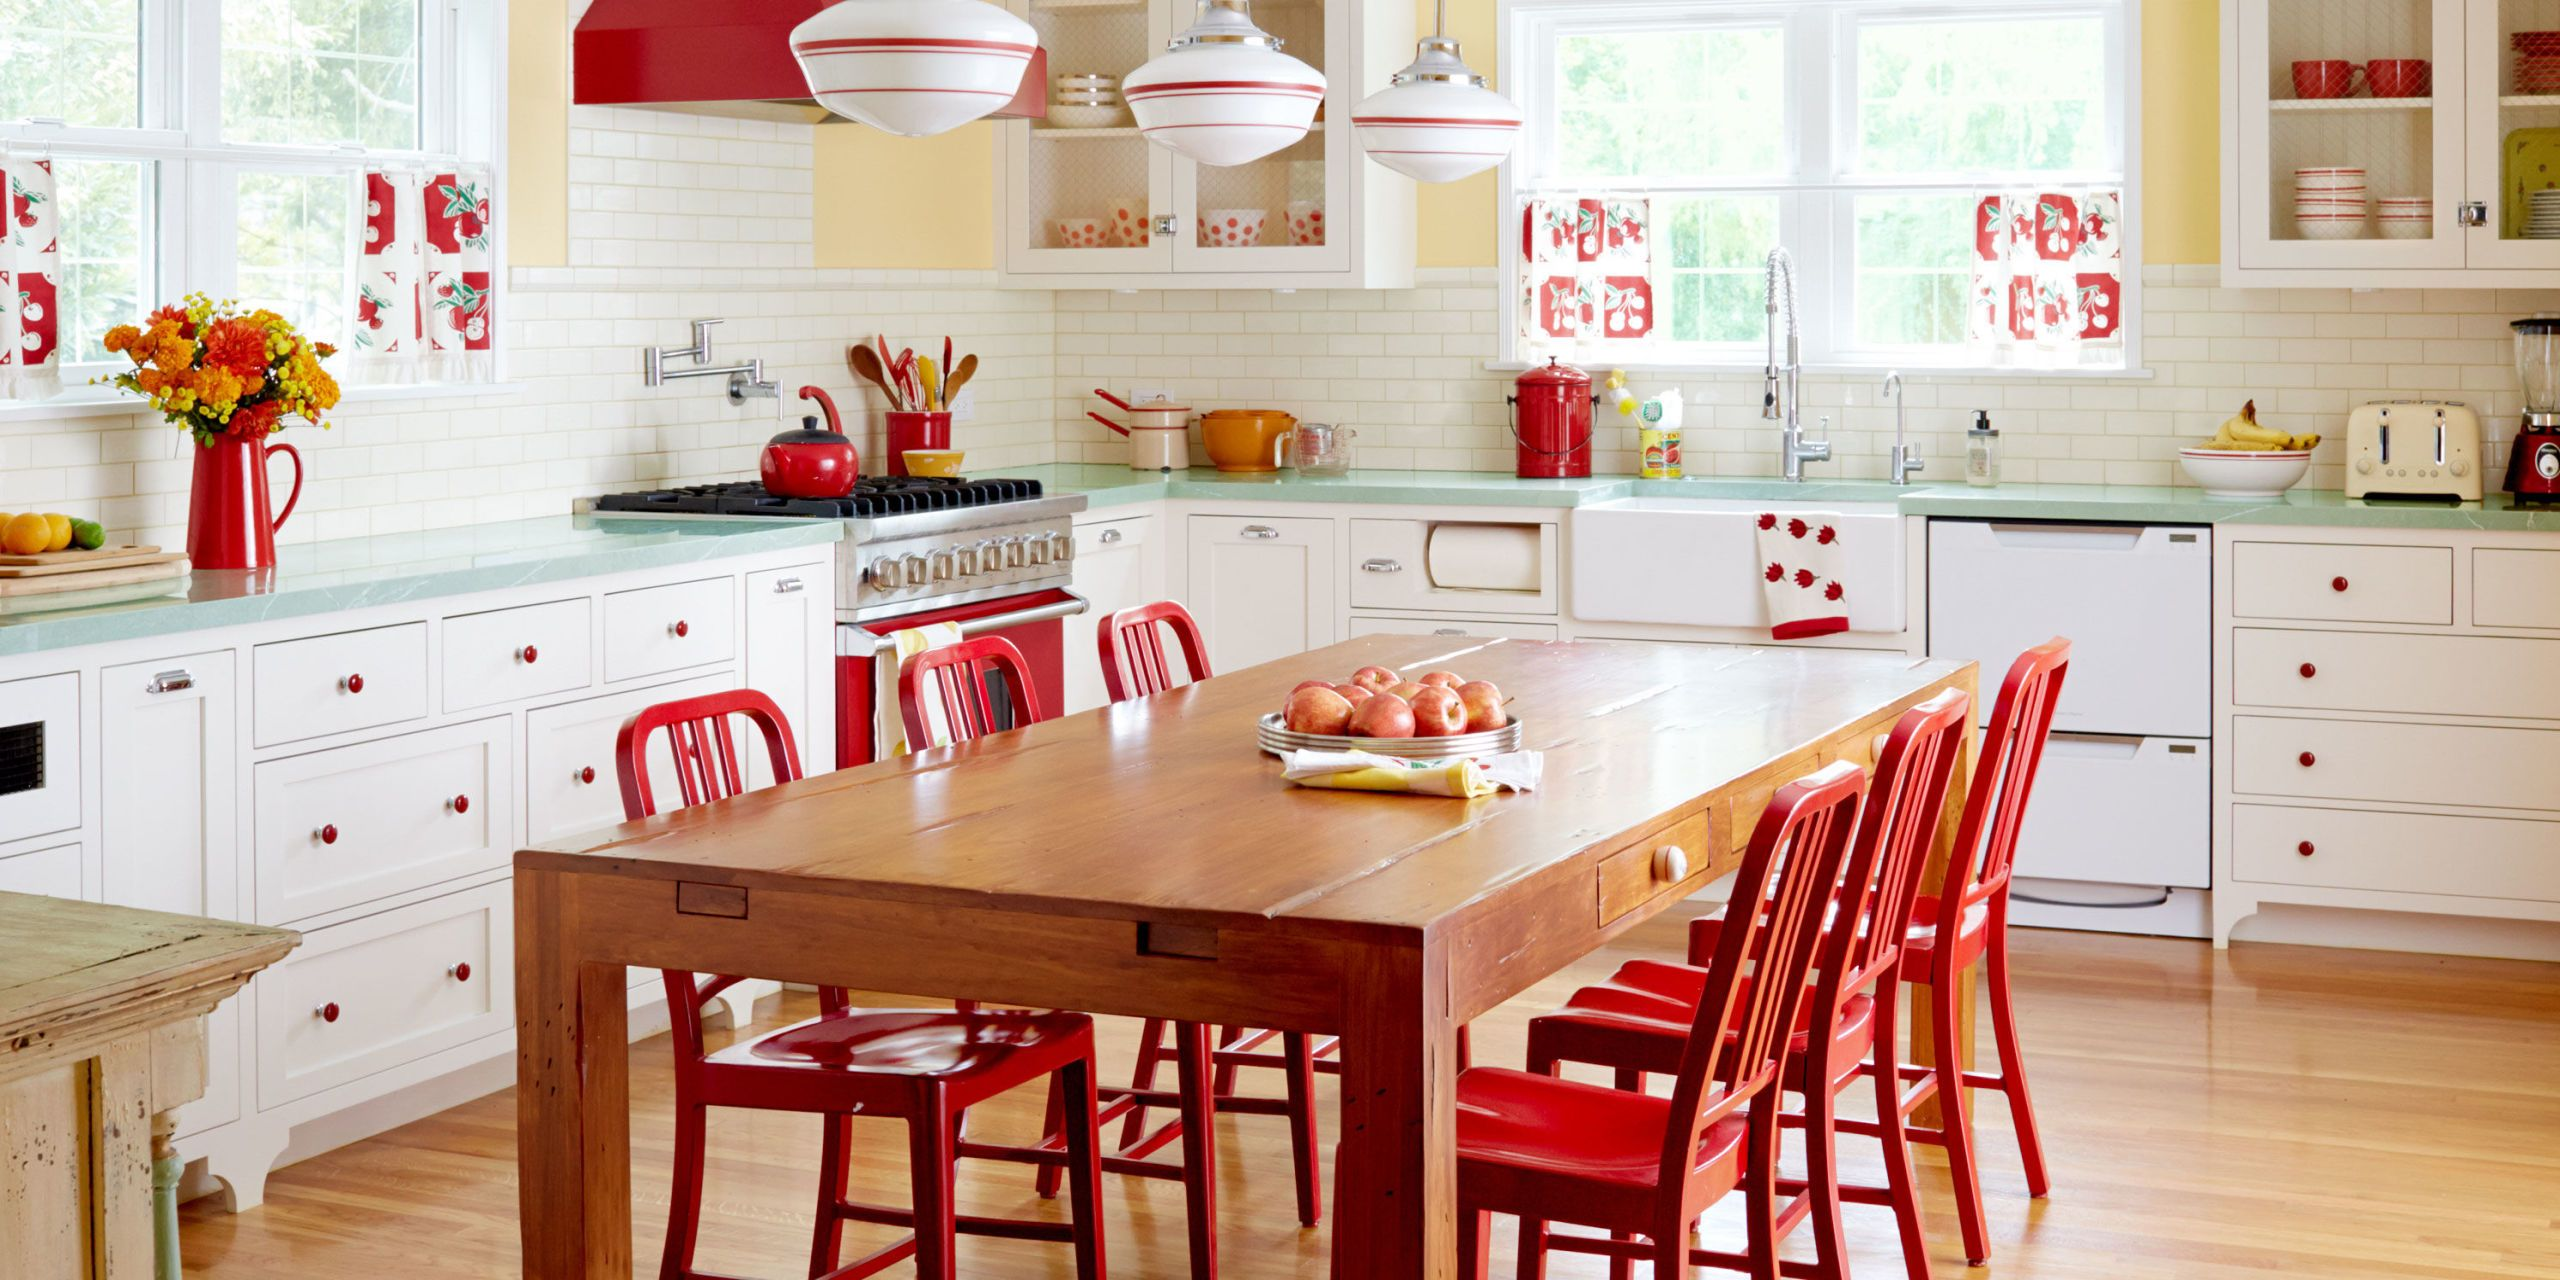 It May Look Retro, But This Brand New Space Is Full Of Surprisingly Fresh  Ideas. Read On For A Heaping Helping Of Sunny Colors, Cheerful Accentsu2014and  The ...